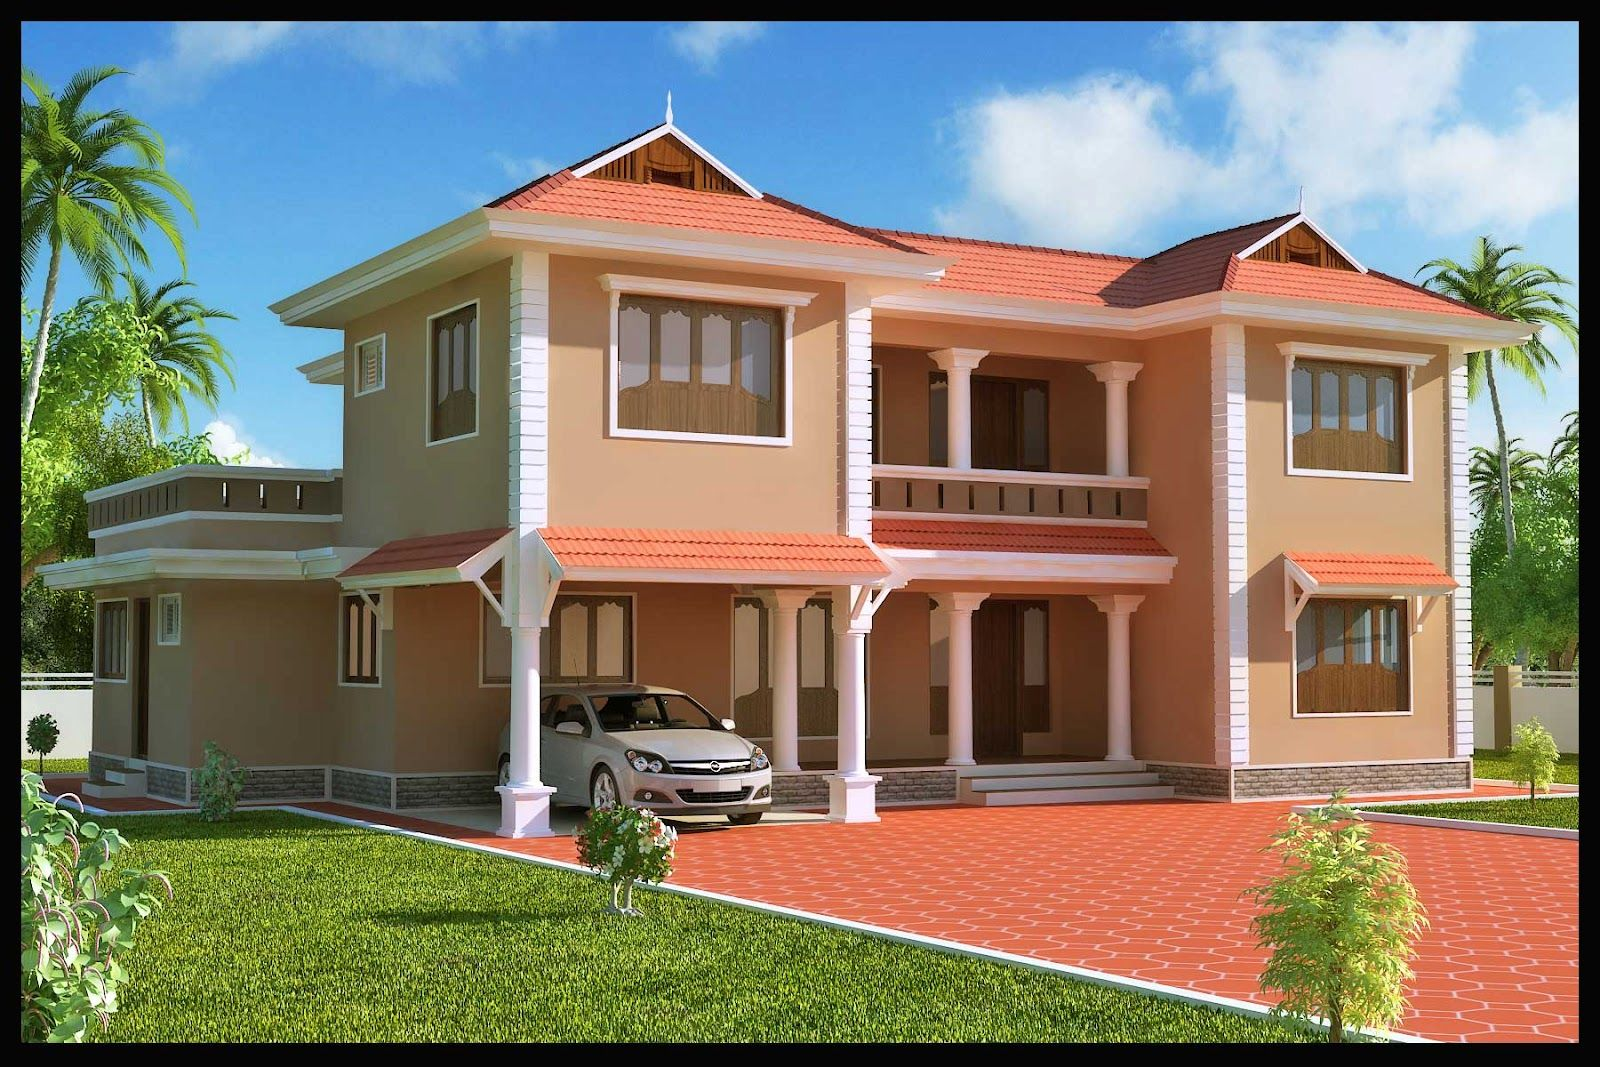 Slide2 adjacent colors architecture exterior captivating for Home exterior design india residence houses